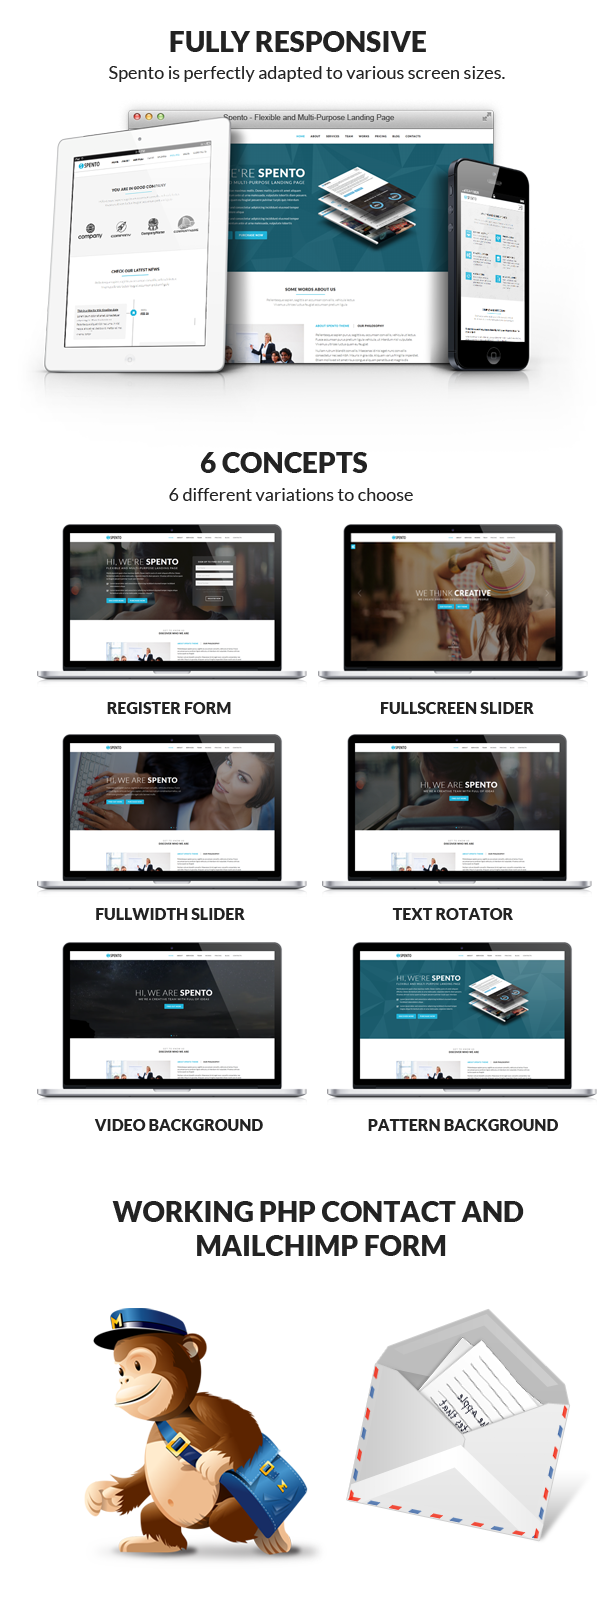 Spento - Flexible and Multi-Purpose Landing Page